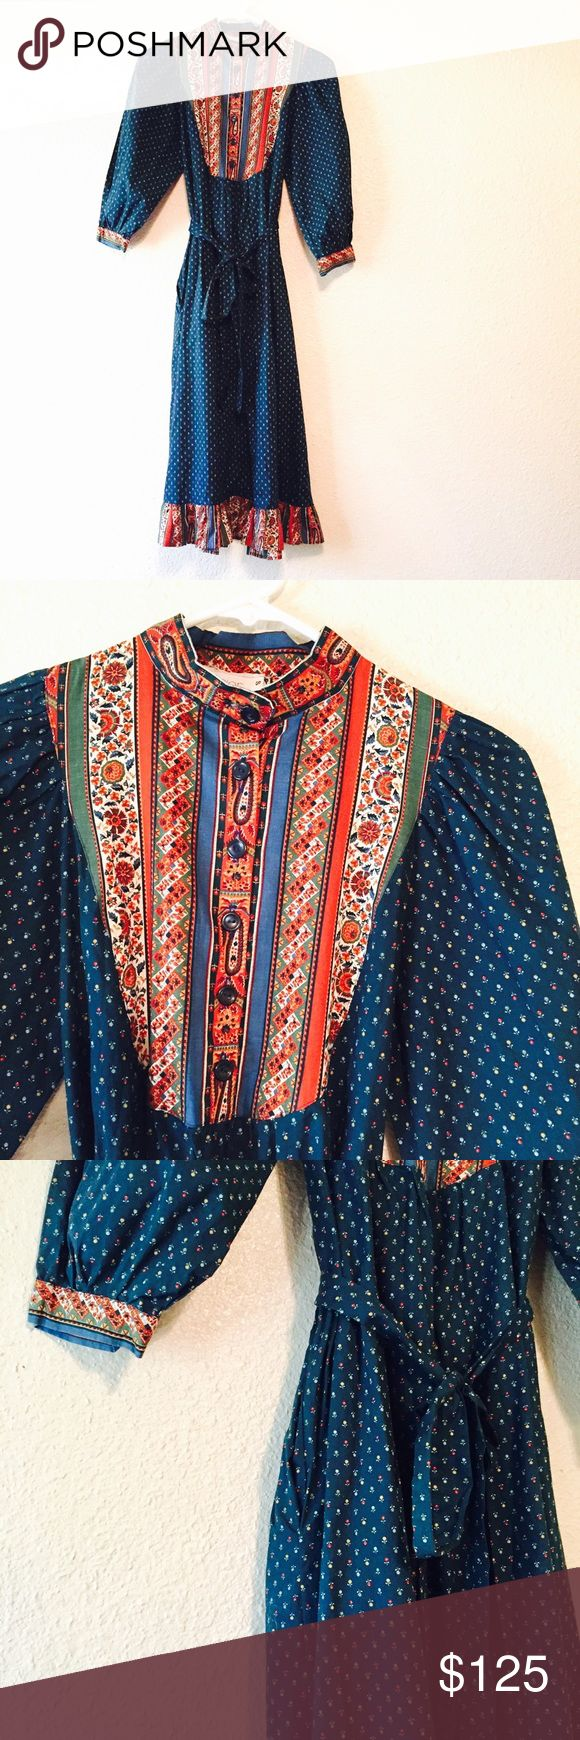 Incredible vintage paisley bohemian dress small Absolutely incredible and one-of-a-kind!! This vintage dress is in pristine condition for a vintage dress! It's a beautiful teal blue color with flower print. It's for red paisley accents as well. Perfect for any boho styled closet Jinx Senior brand, handcrafted and very high quality from Canada. Button down front at the top, side pockets, and tie waist. You'll fall in love with this! Size small. Vintage Dresses Midi